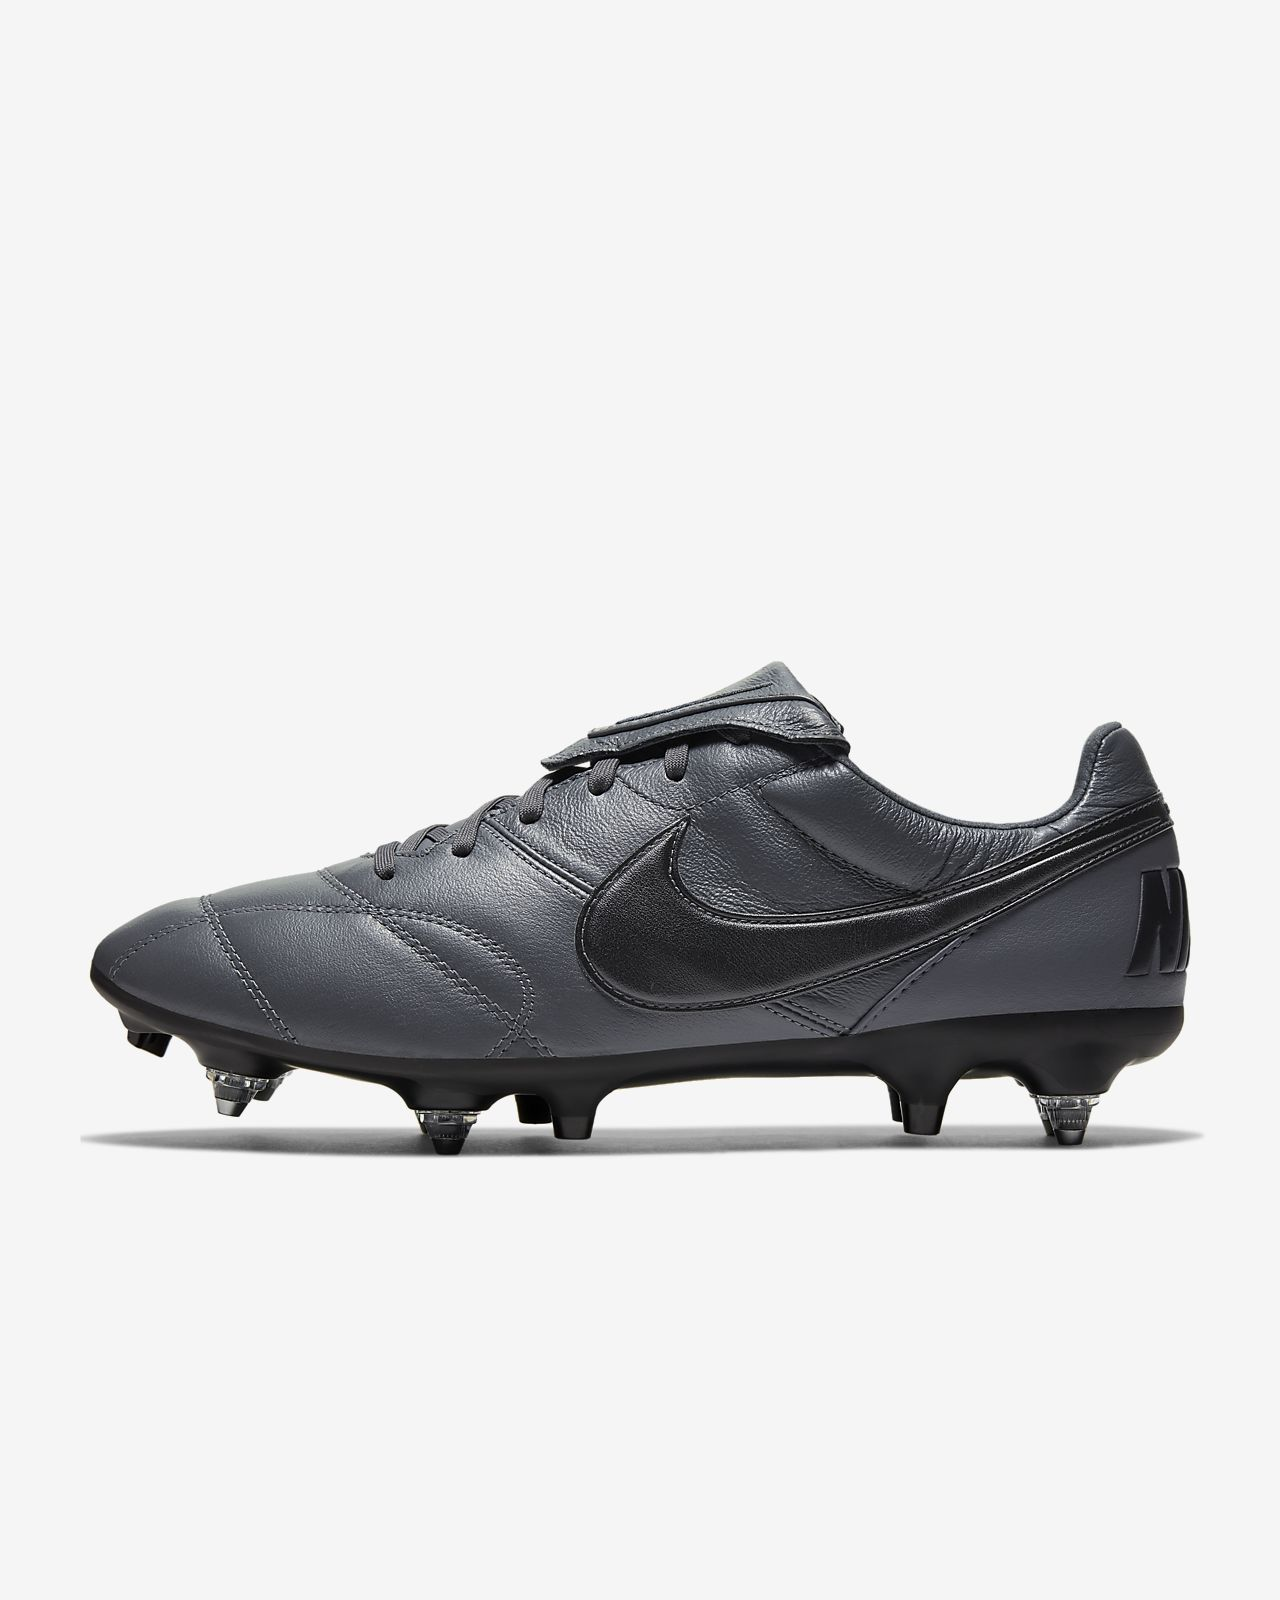 Nike Premier II Anti-Clog Traction SG-PRO Soft-Ground Football Boot